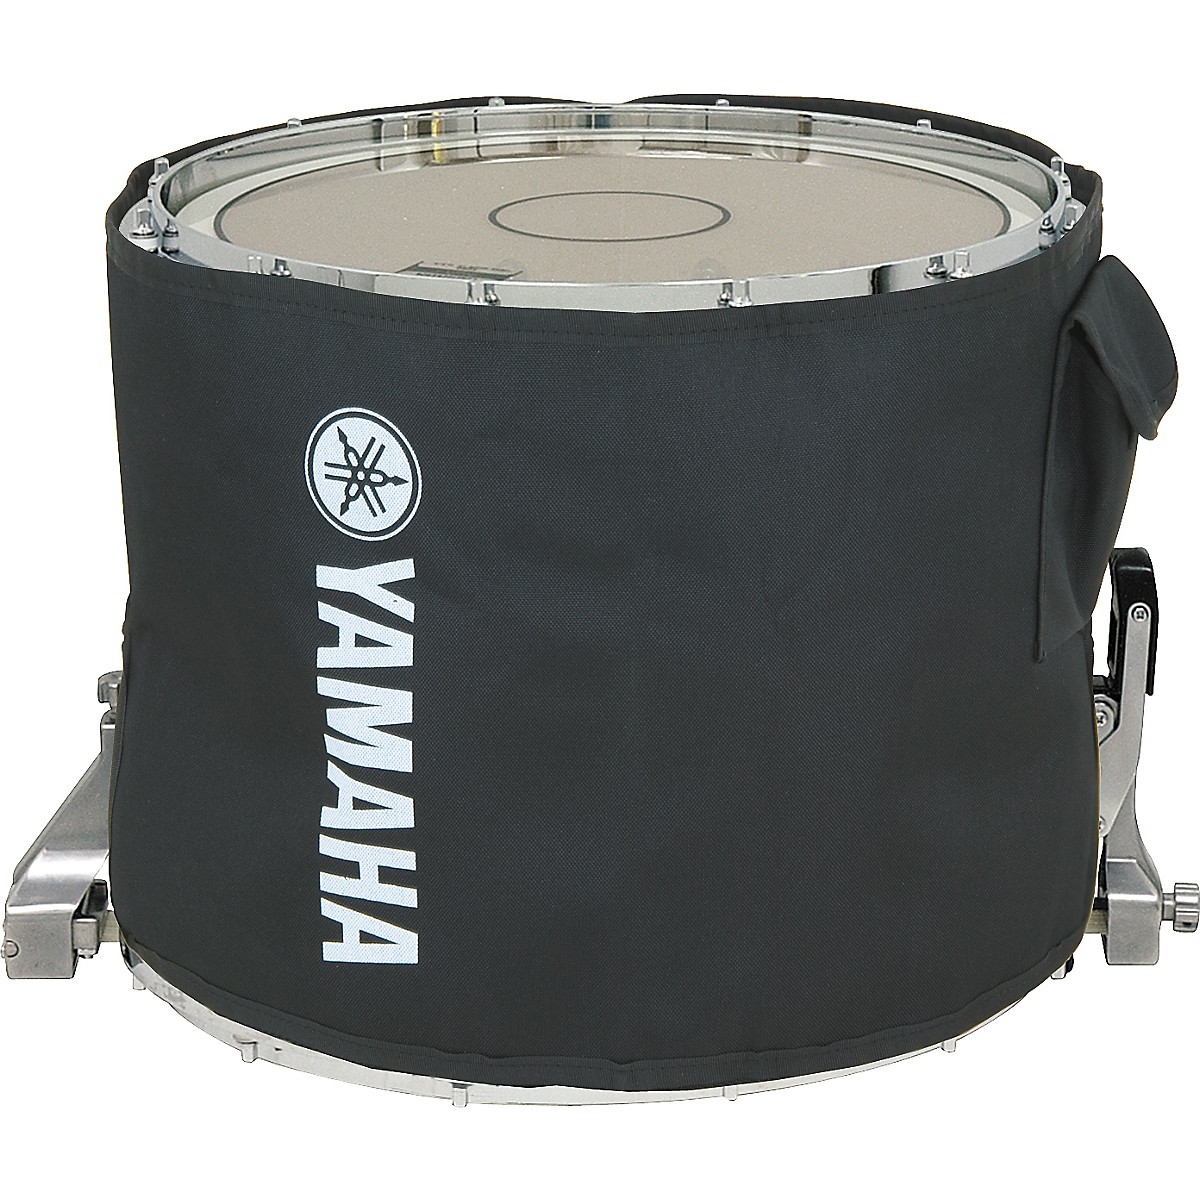 Yamaha SNC13 Marching Snare Drum Cover